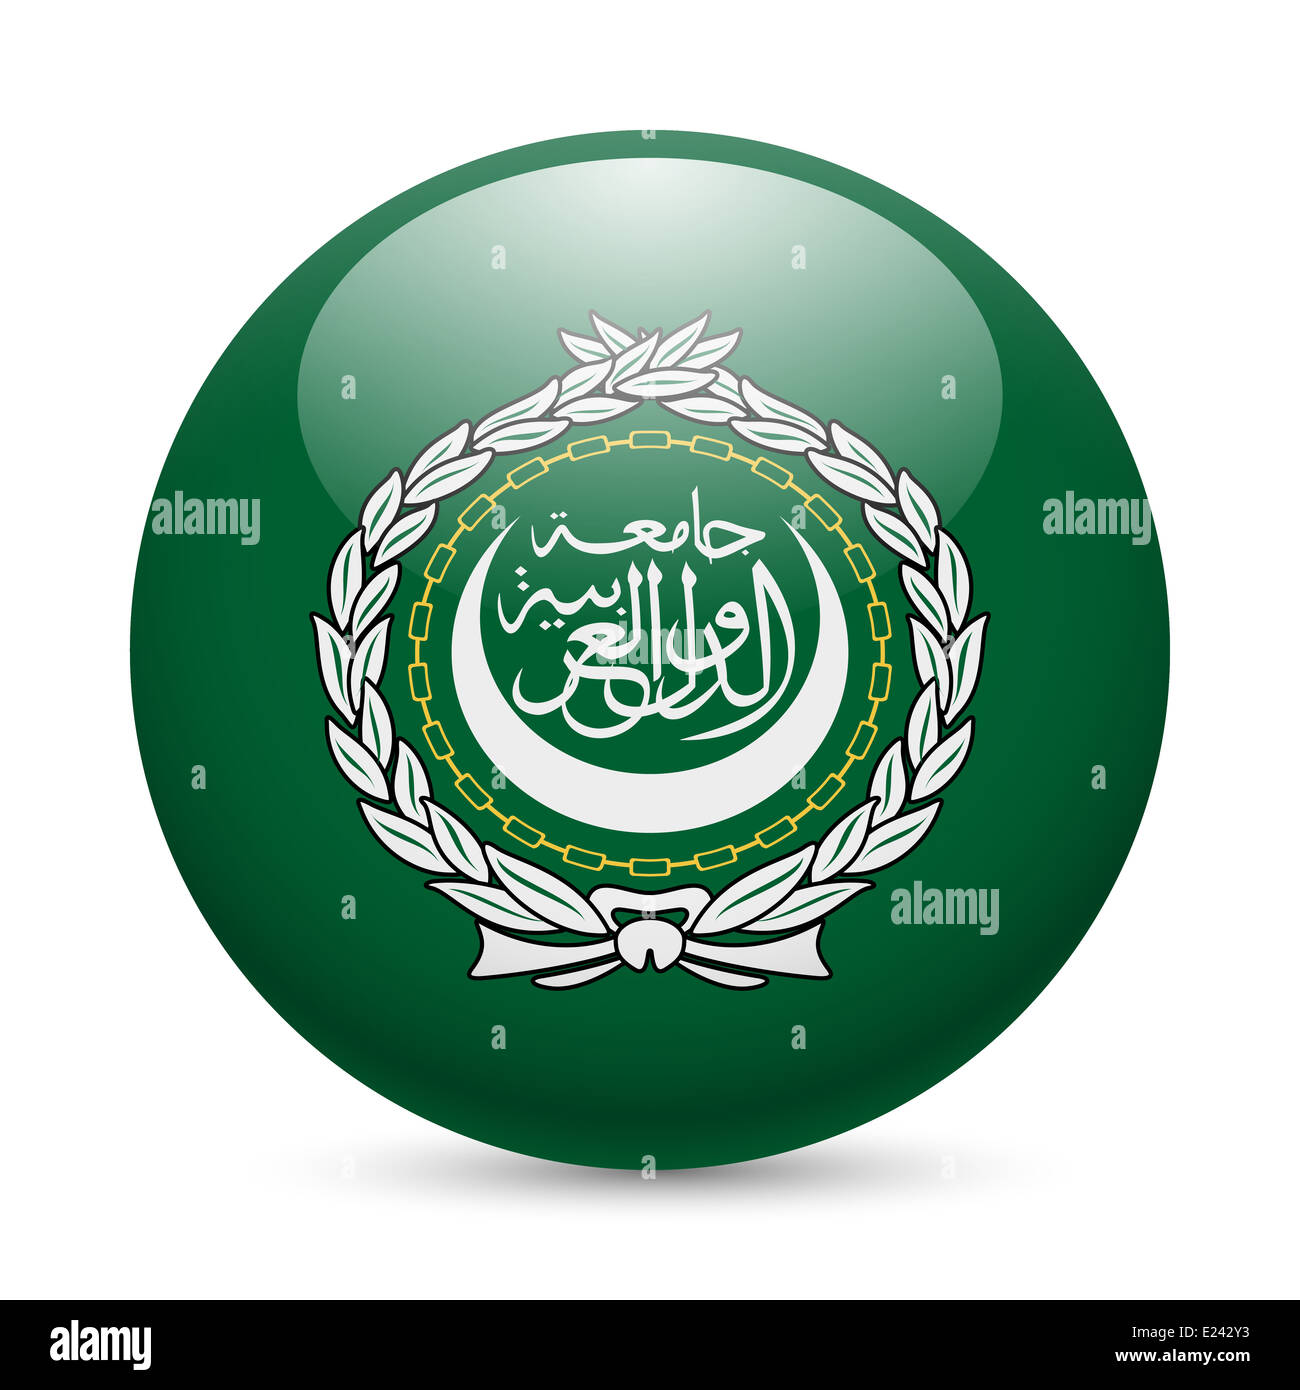 Flag of Arab League as round glossy icon. Button with flag design - Stock Image